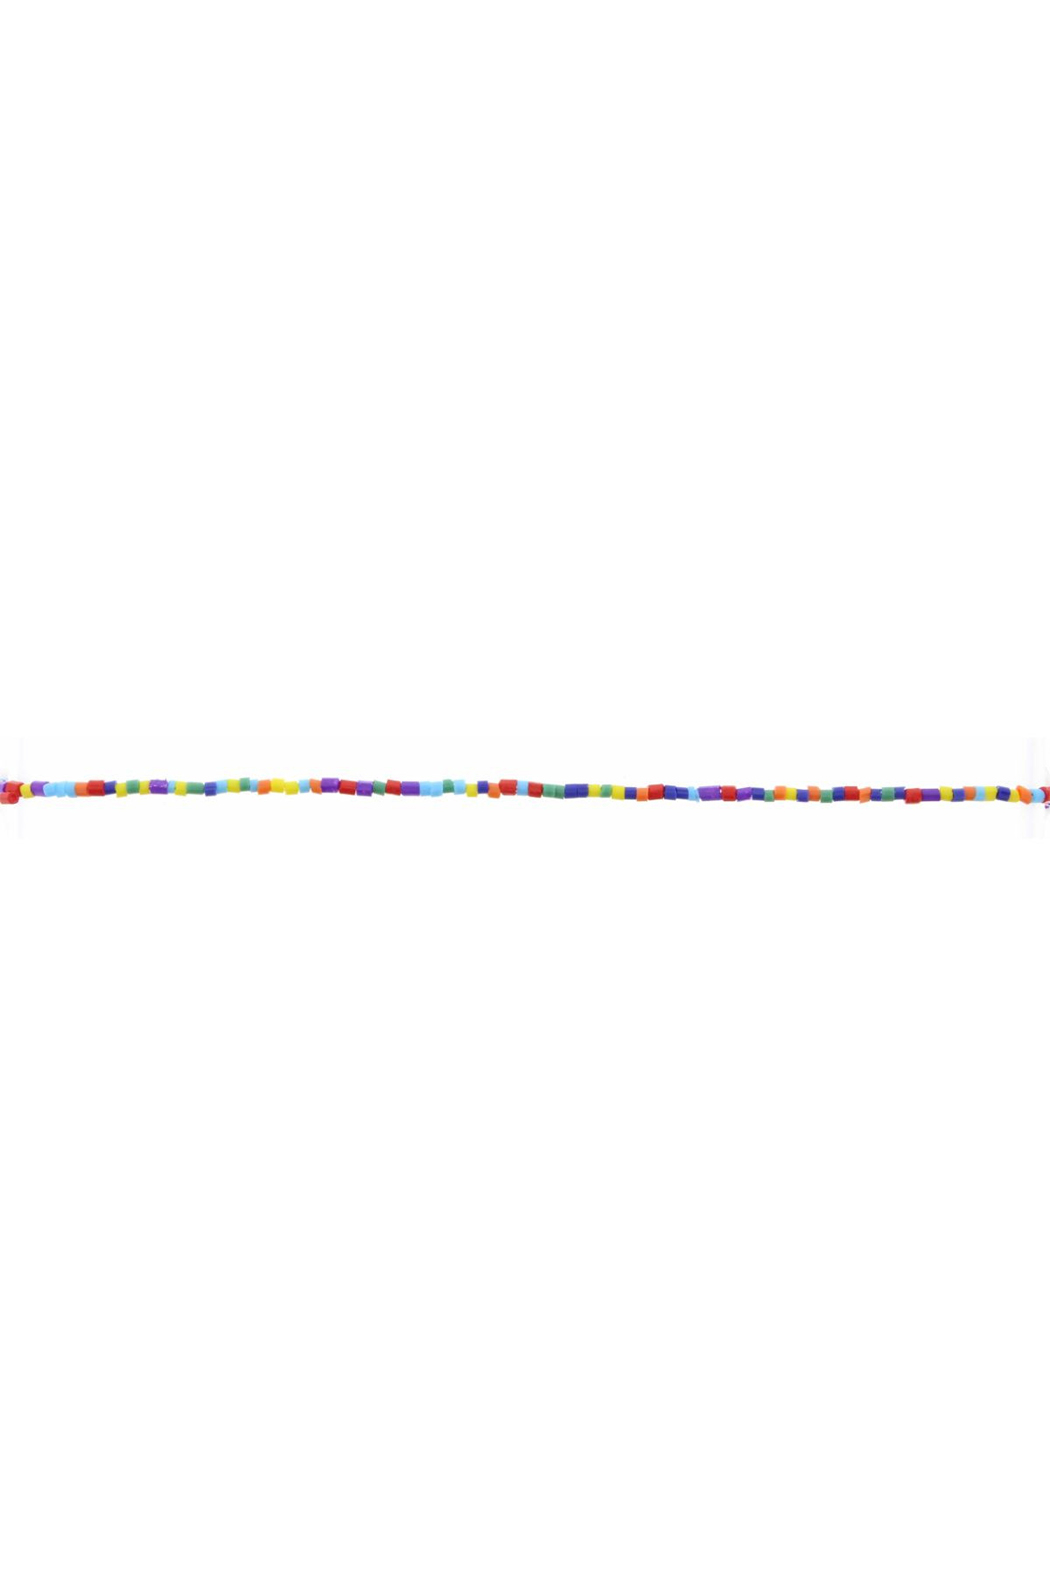 Jane Marie Seed Bead Necklace - Multicolor - Main Image